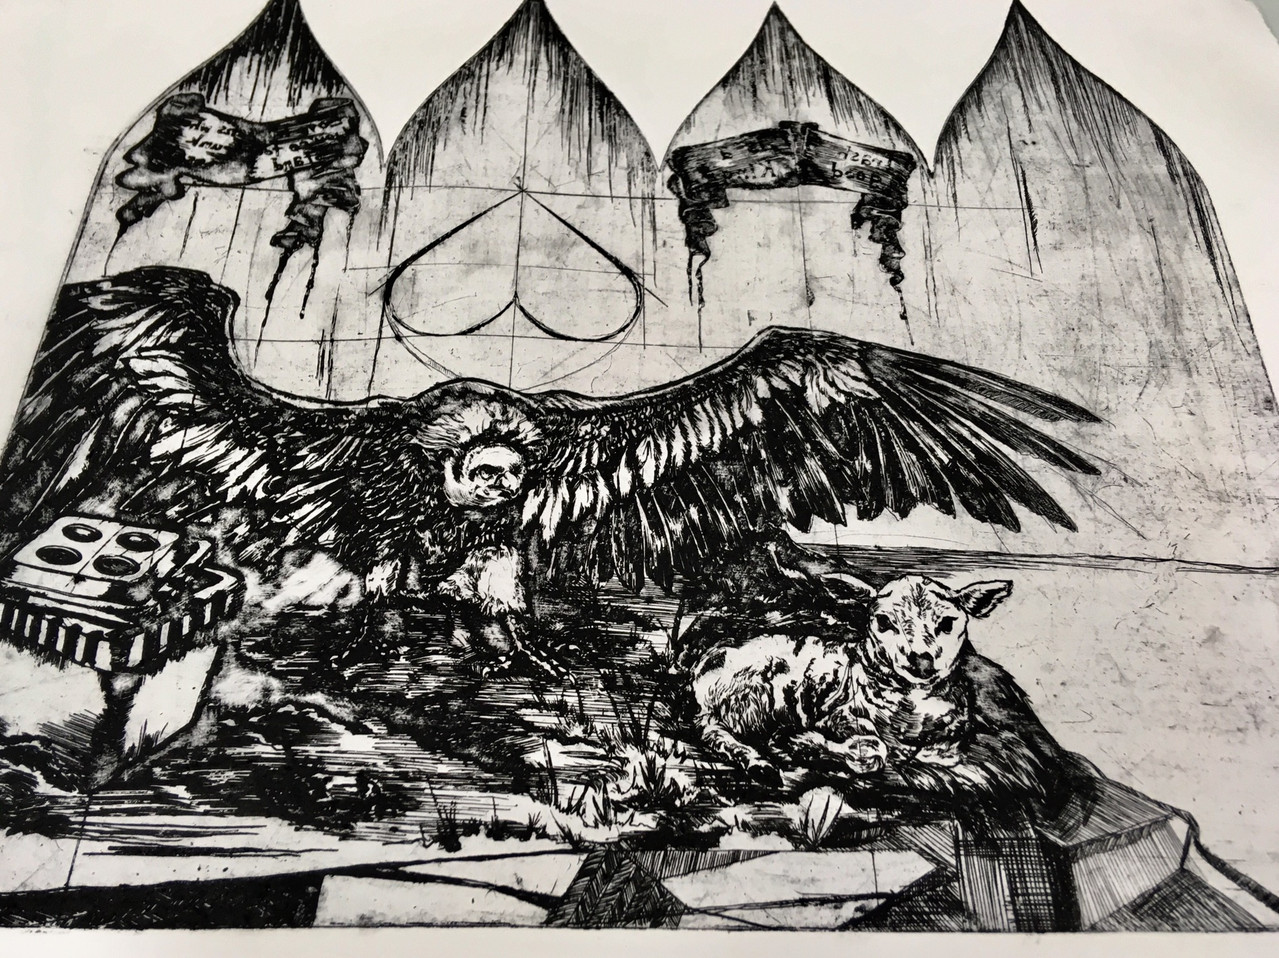 Trash is a Good King, etching by Lucas Pointon.